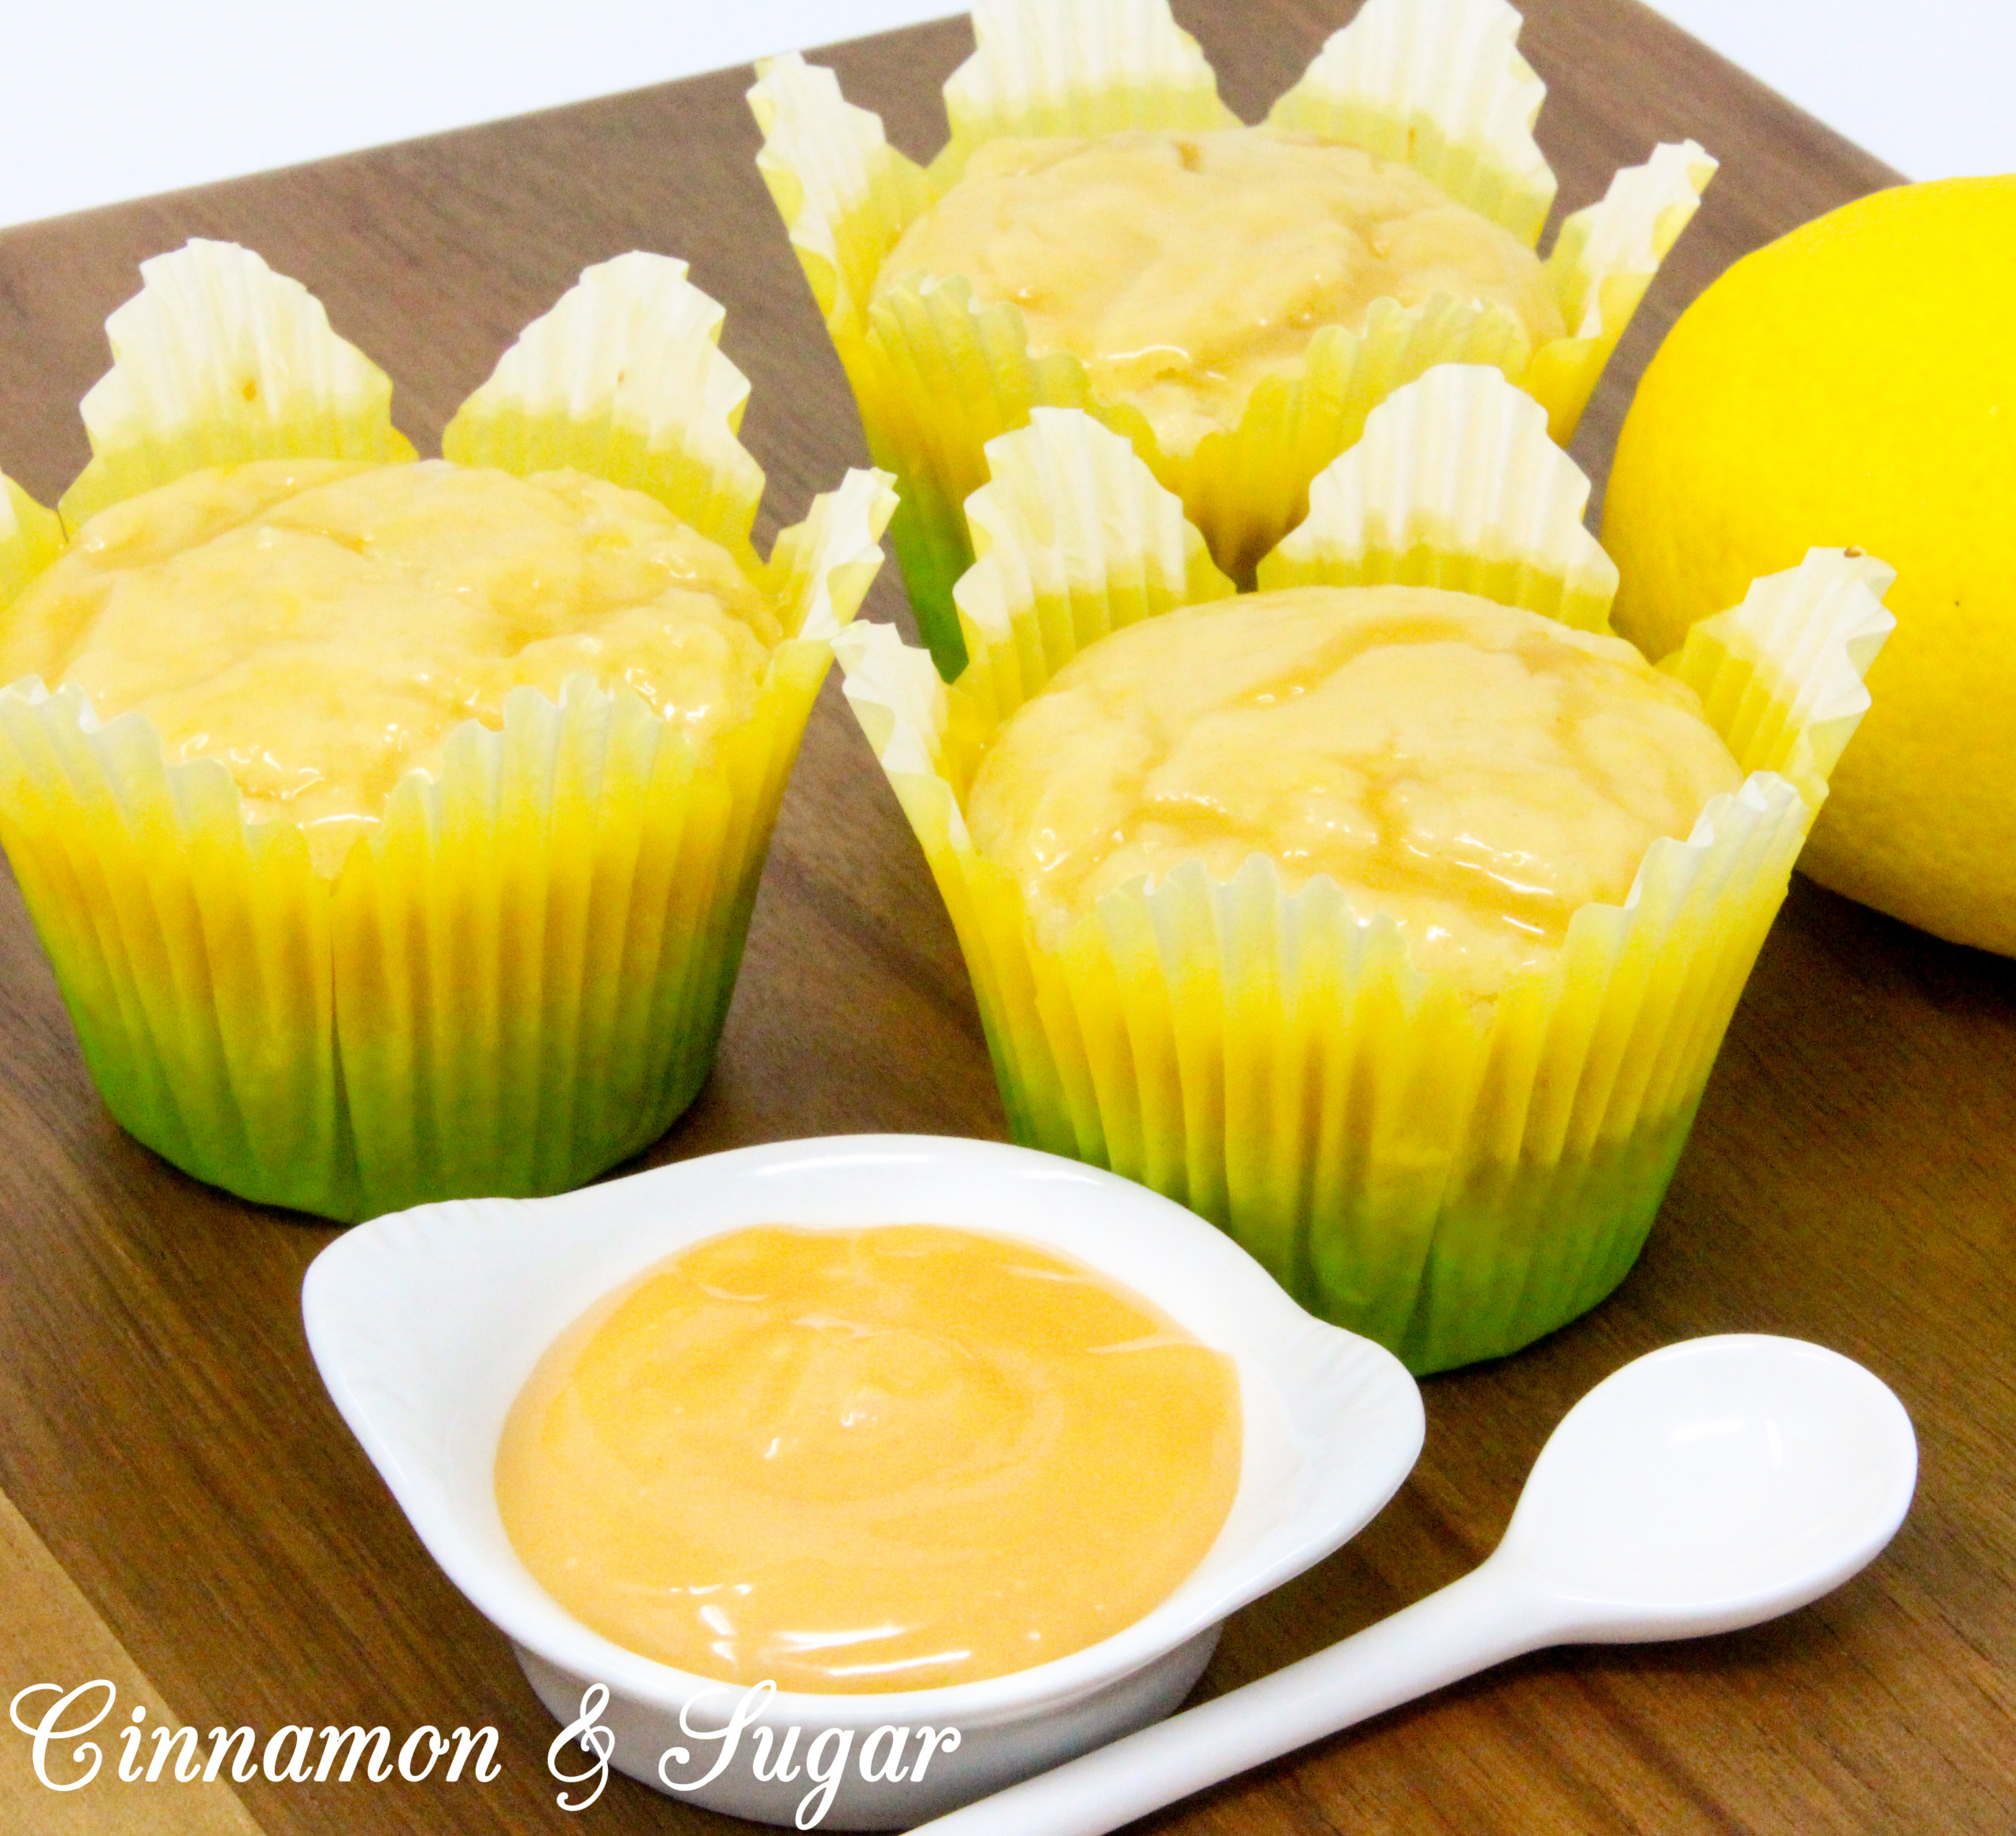 Lemon Curd Muffins are super moist and ultra flavorful thanks to the generous amounts of lemon zest, lemon juice, and lemon curd! A delicious treat for breakfast and snack time, or serve with a dollop of ice cream for dessert. Recipe shared with permission granted by Libby Klein, author of WINE TASTINGS ARE MURDER.